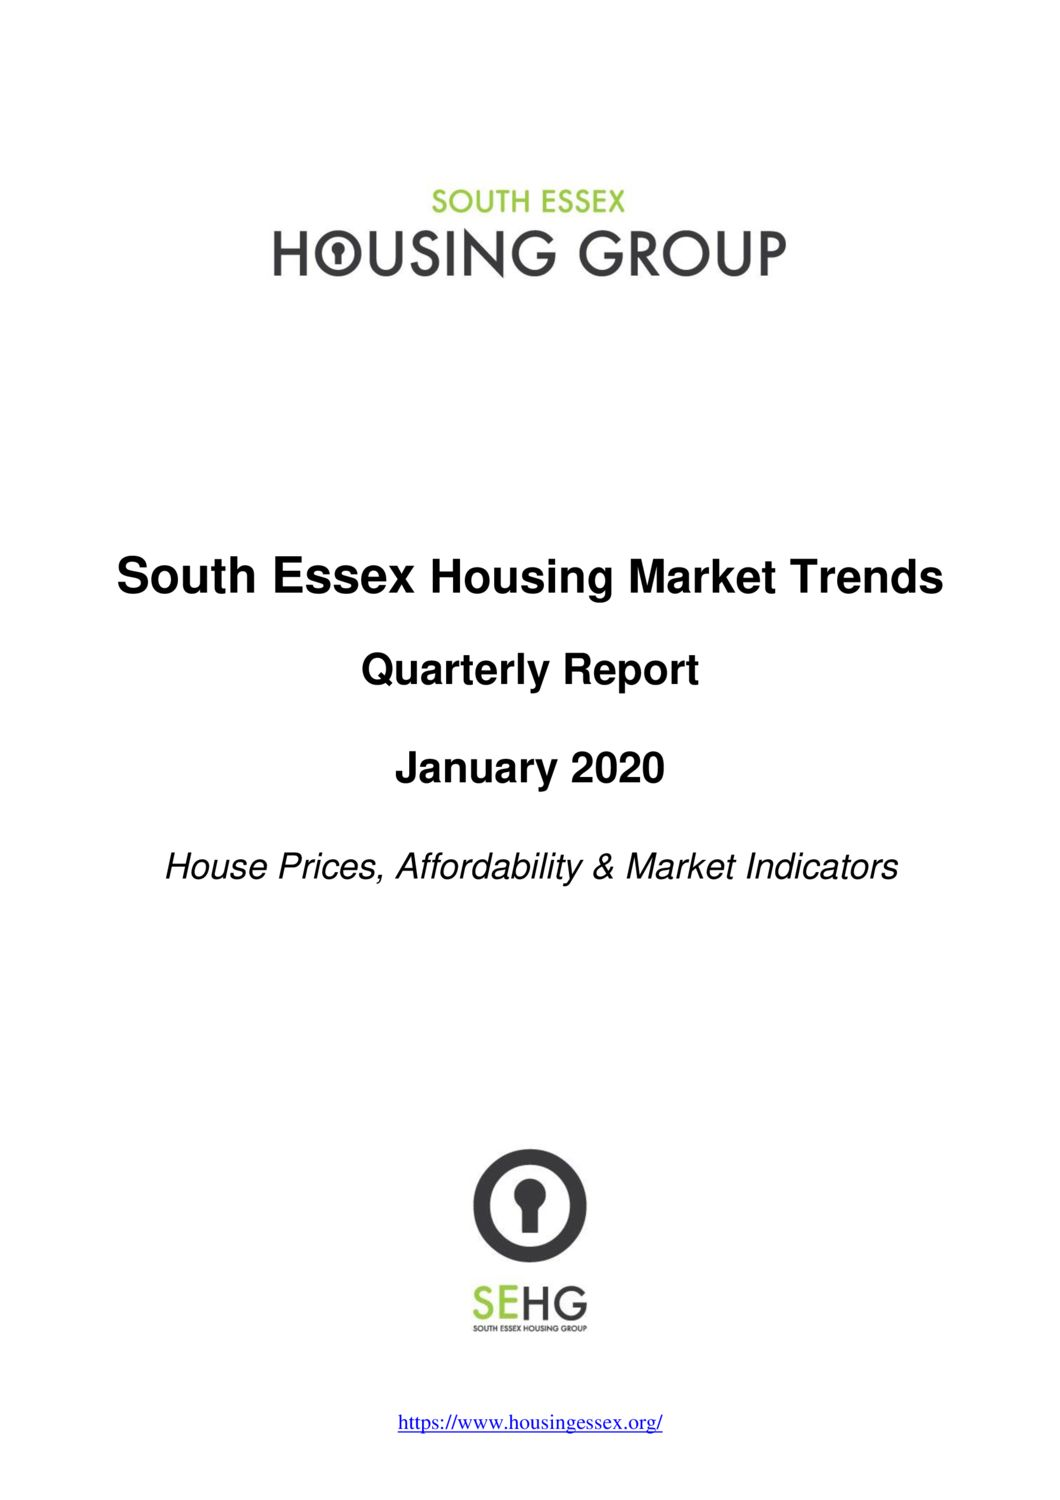 South Essex Housing Market Trends January 2020